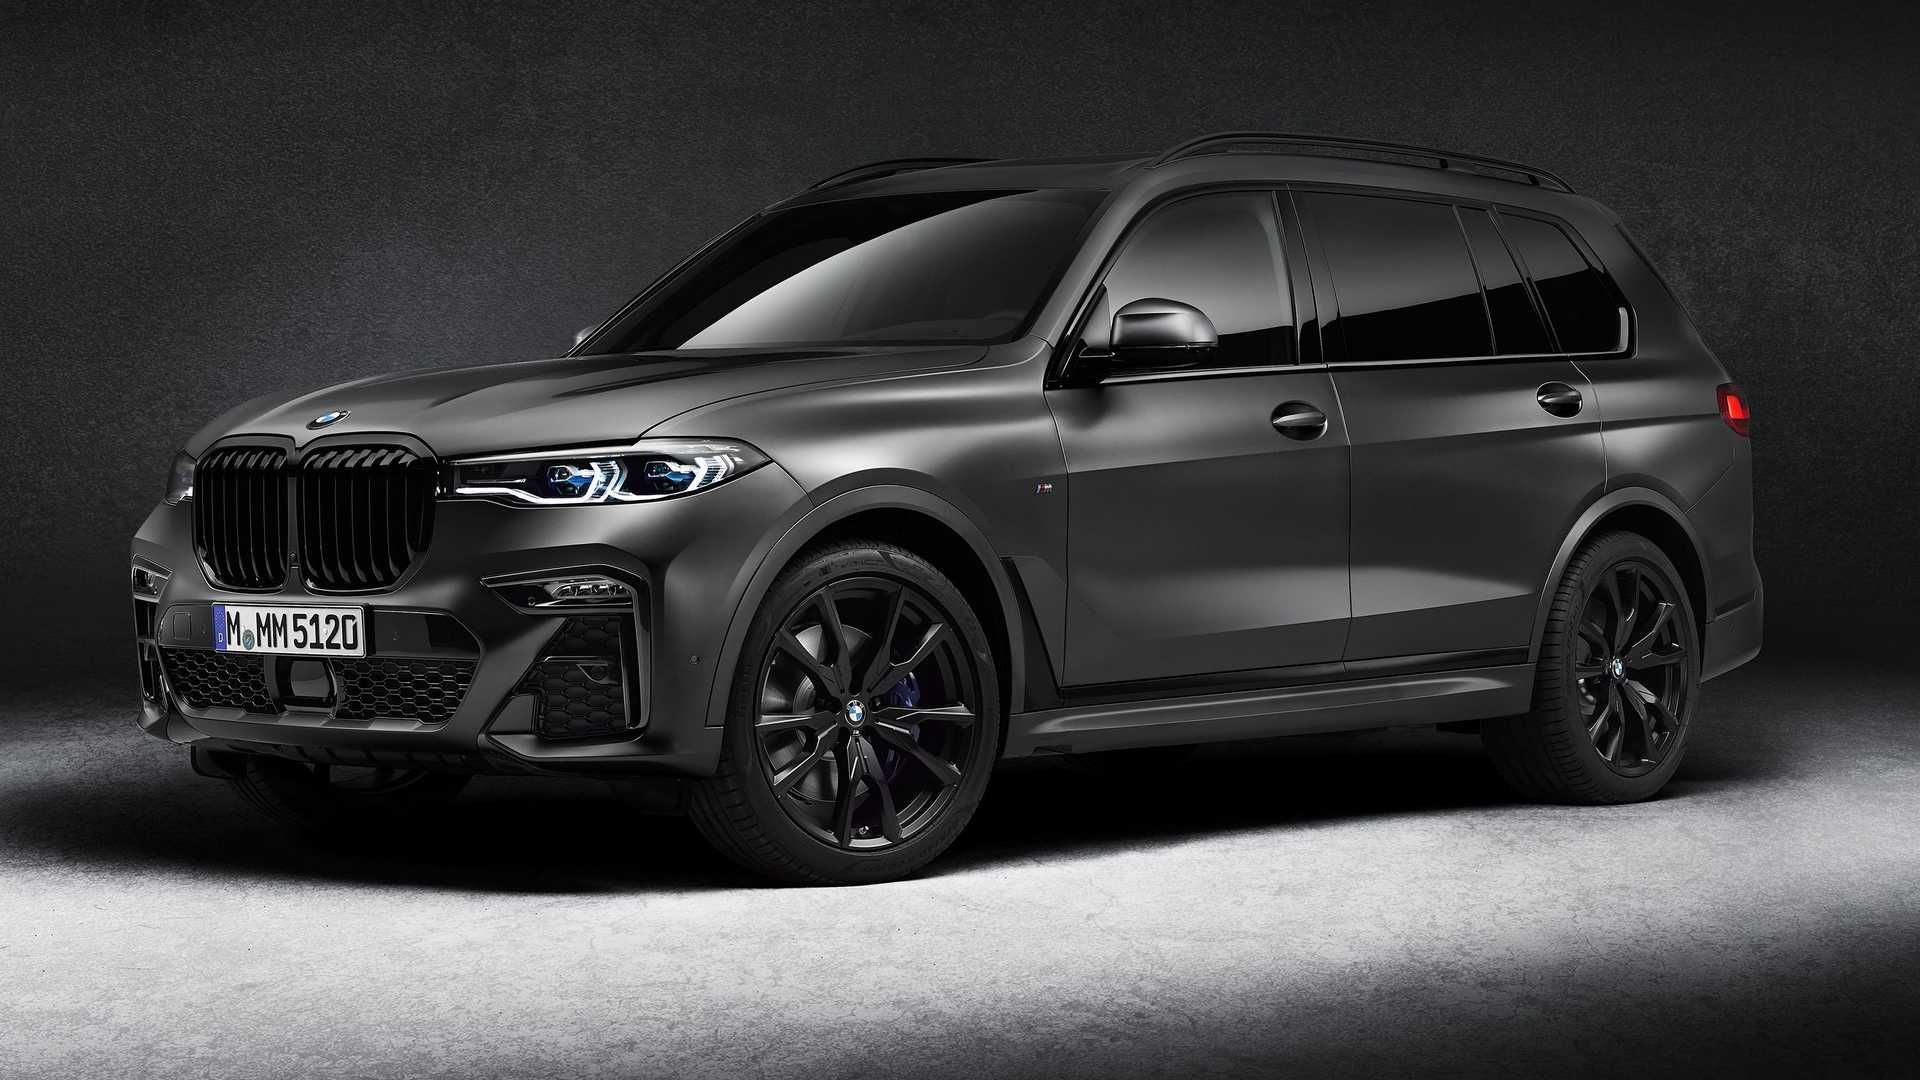 The 2021 Bmw X7 Dark Shadow Edition Wears A Unique Color With A Matte Finish Inside Leather Covers Nearly Every Surface Bmw X7 Luxury Suv Super Cars